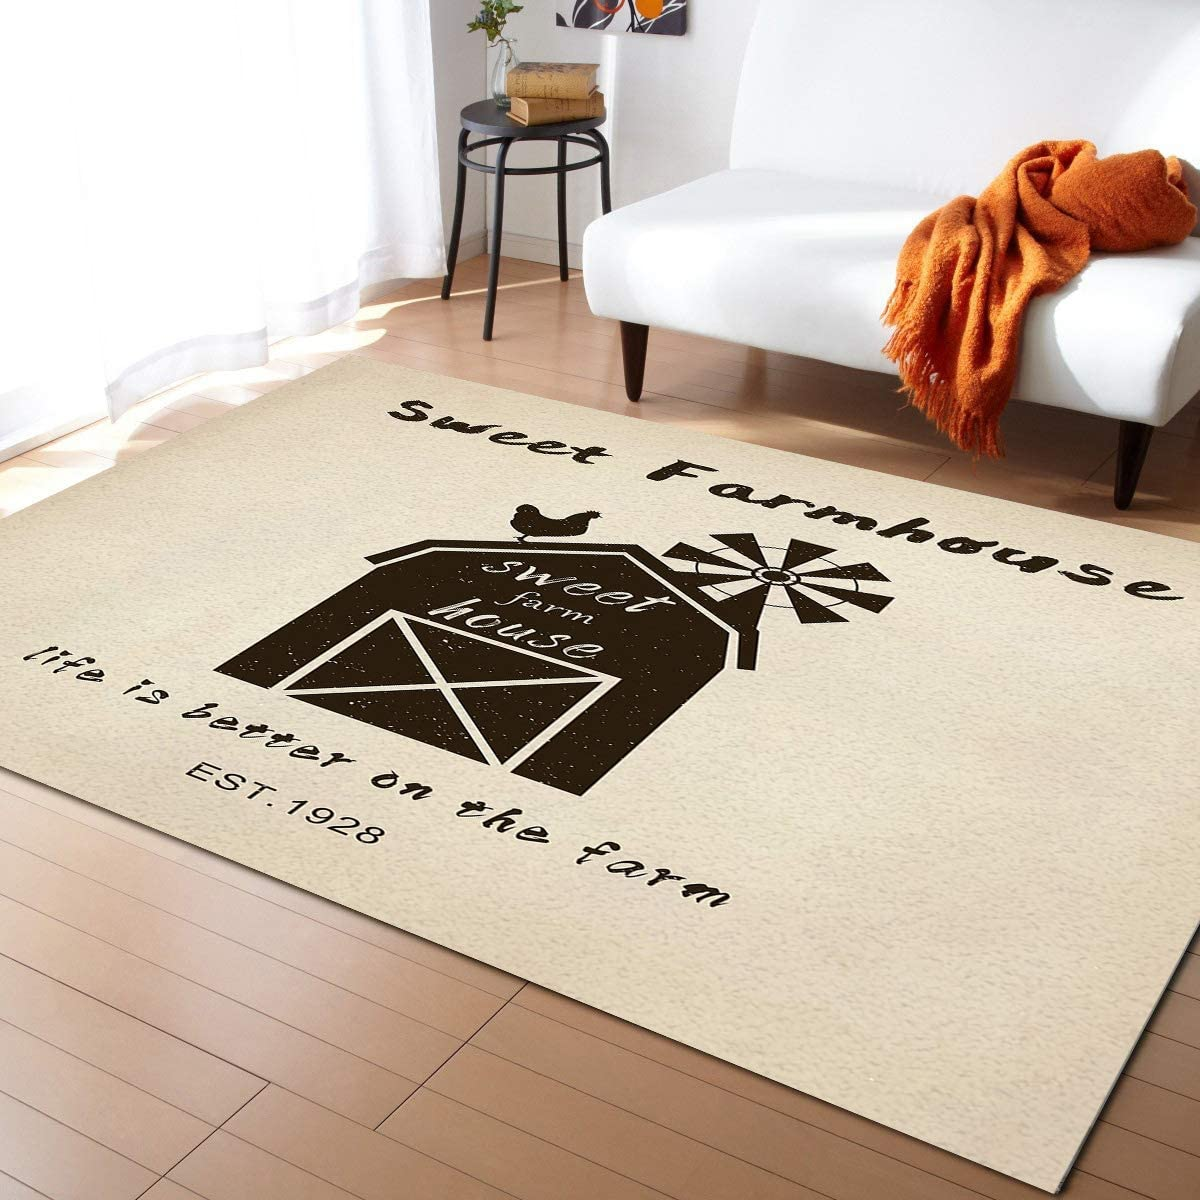 Prime Leader Modern Contemporary Area Room Living All quality assurance items free shipping Rug for Sweet